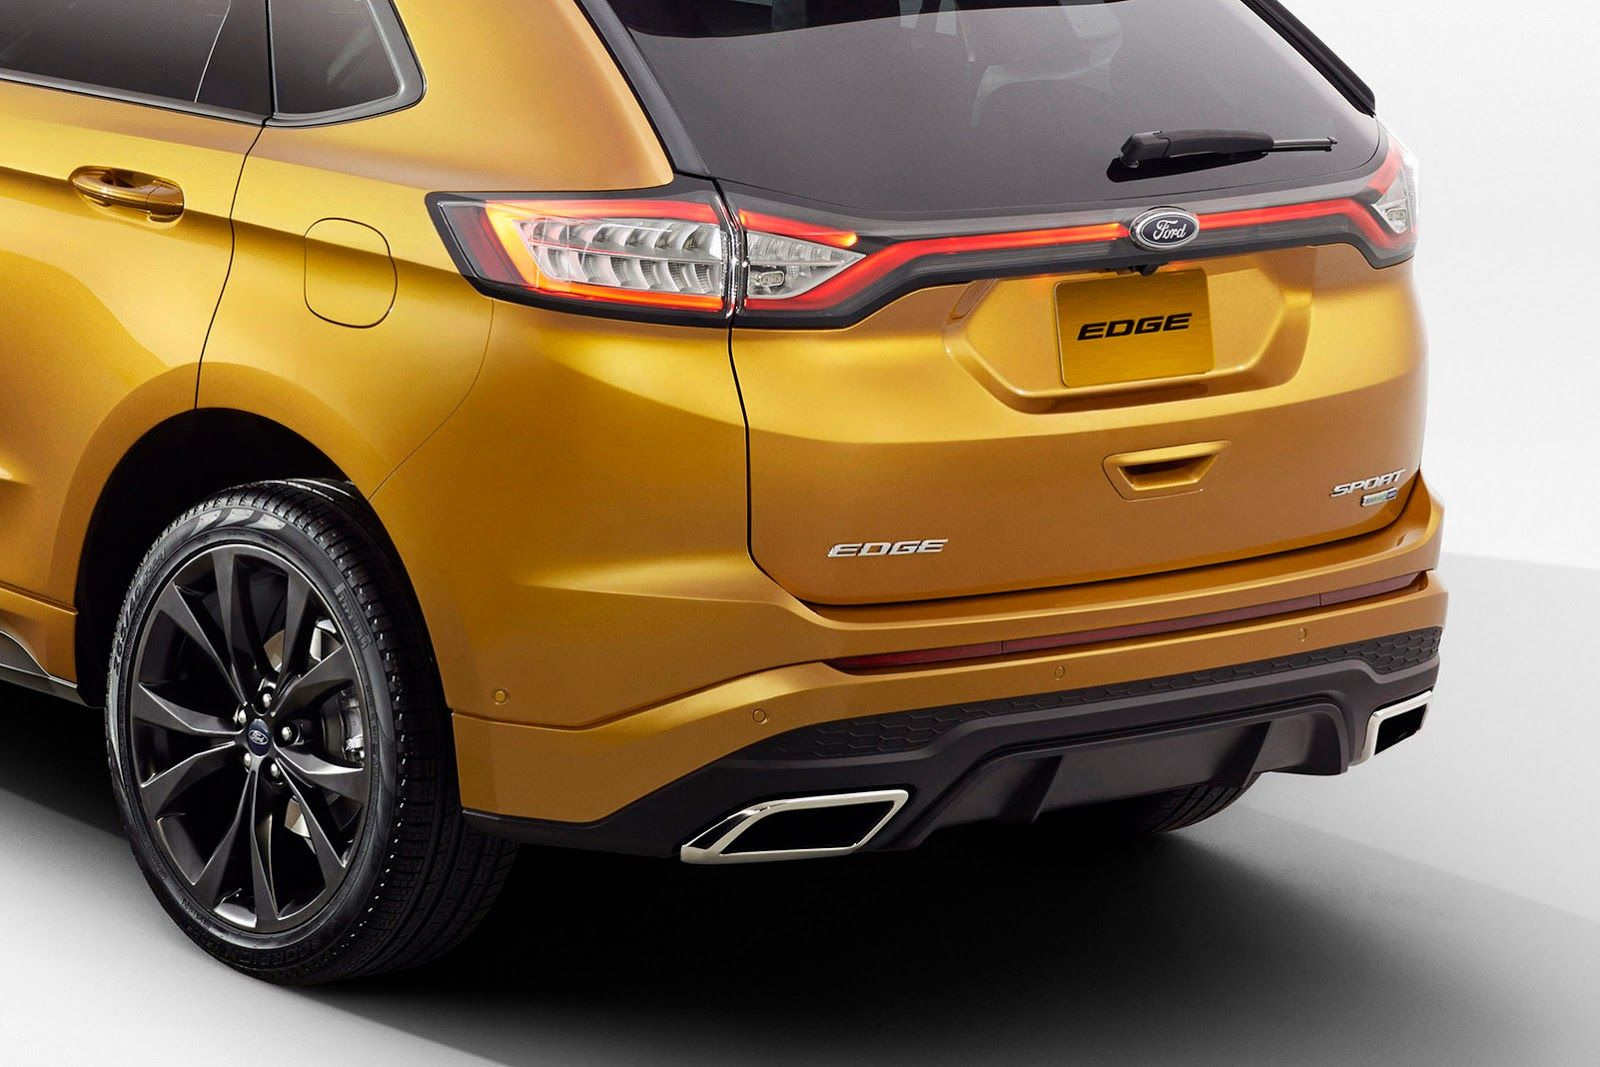 2015 ford edge gets better looks and more tech for its journey around the world